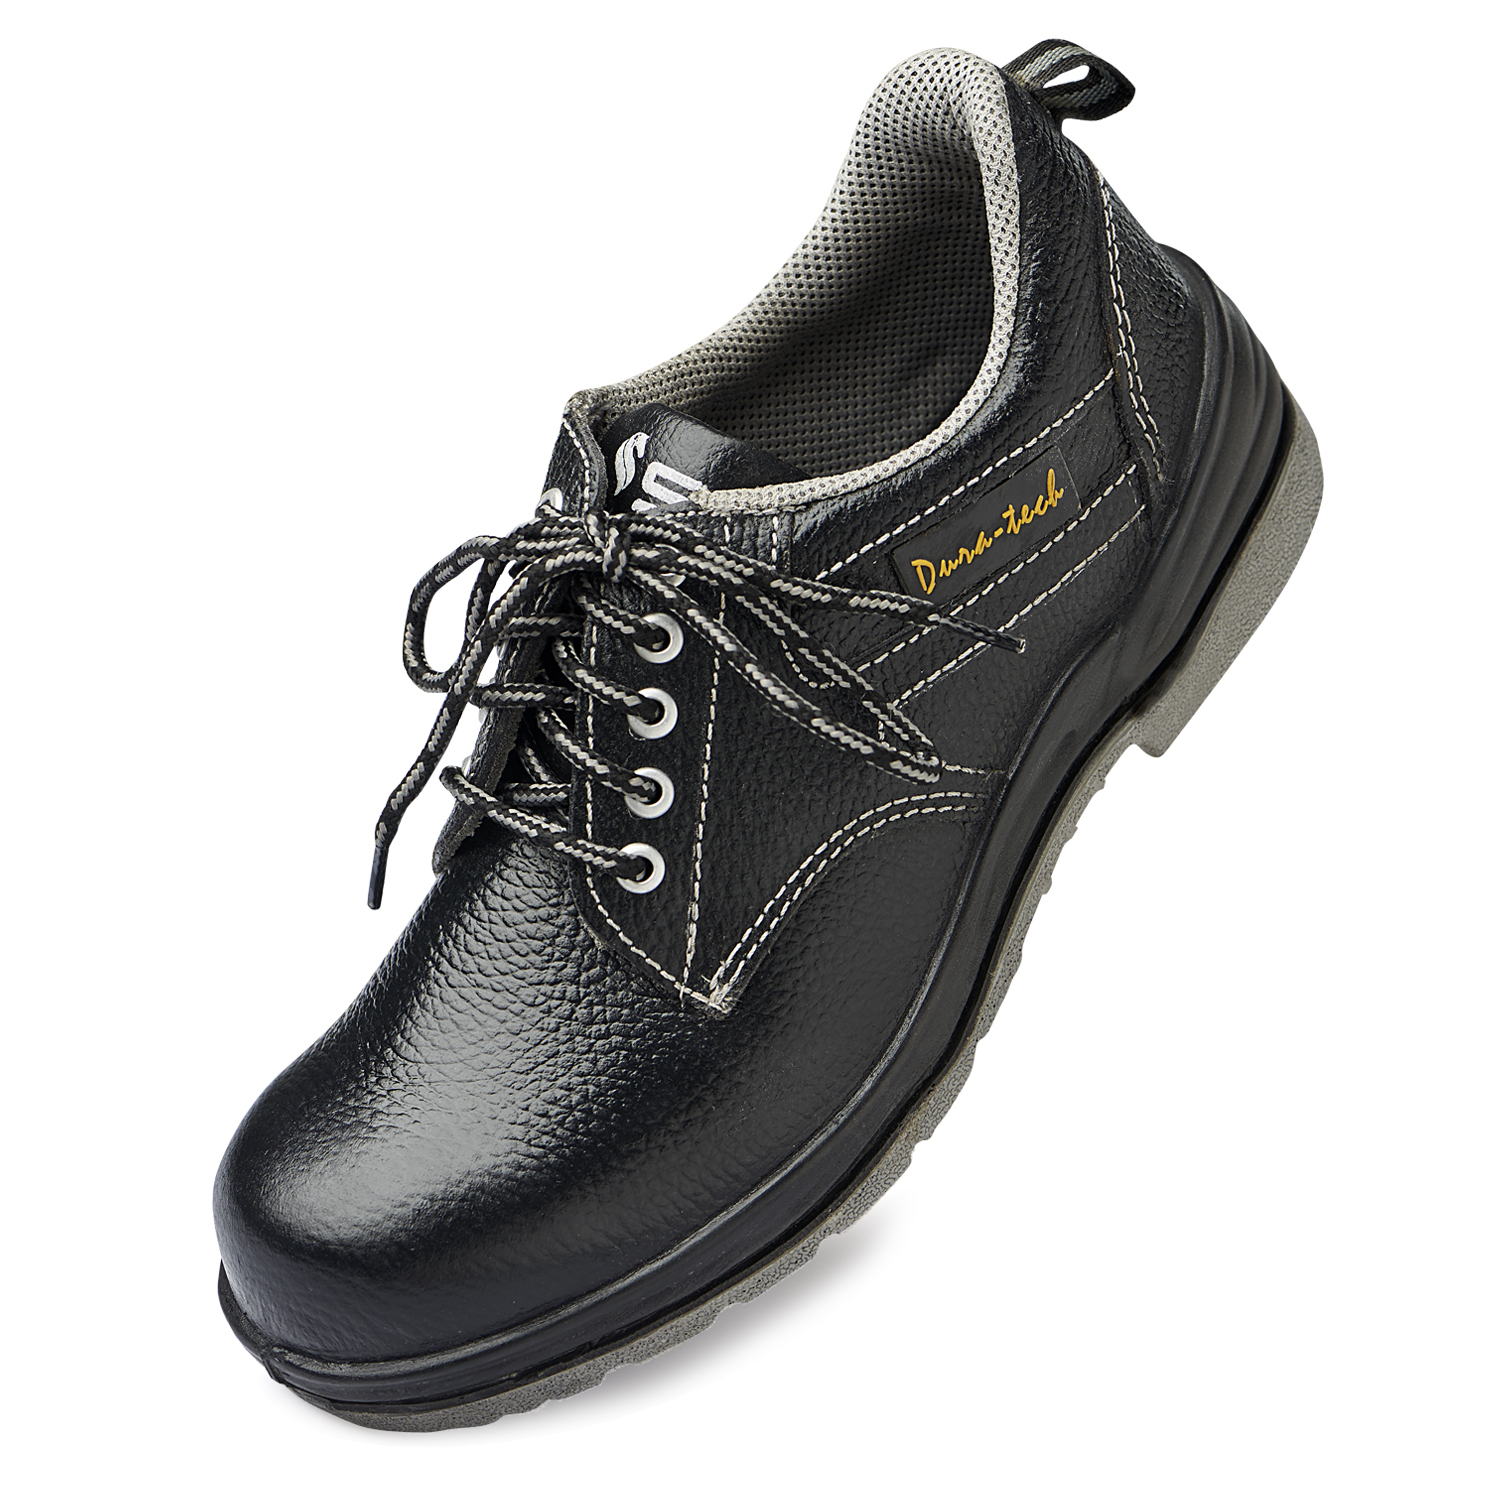 Duratech ST PU Safety Shoes